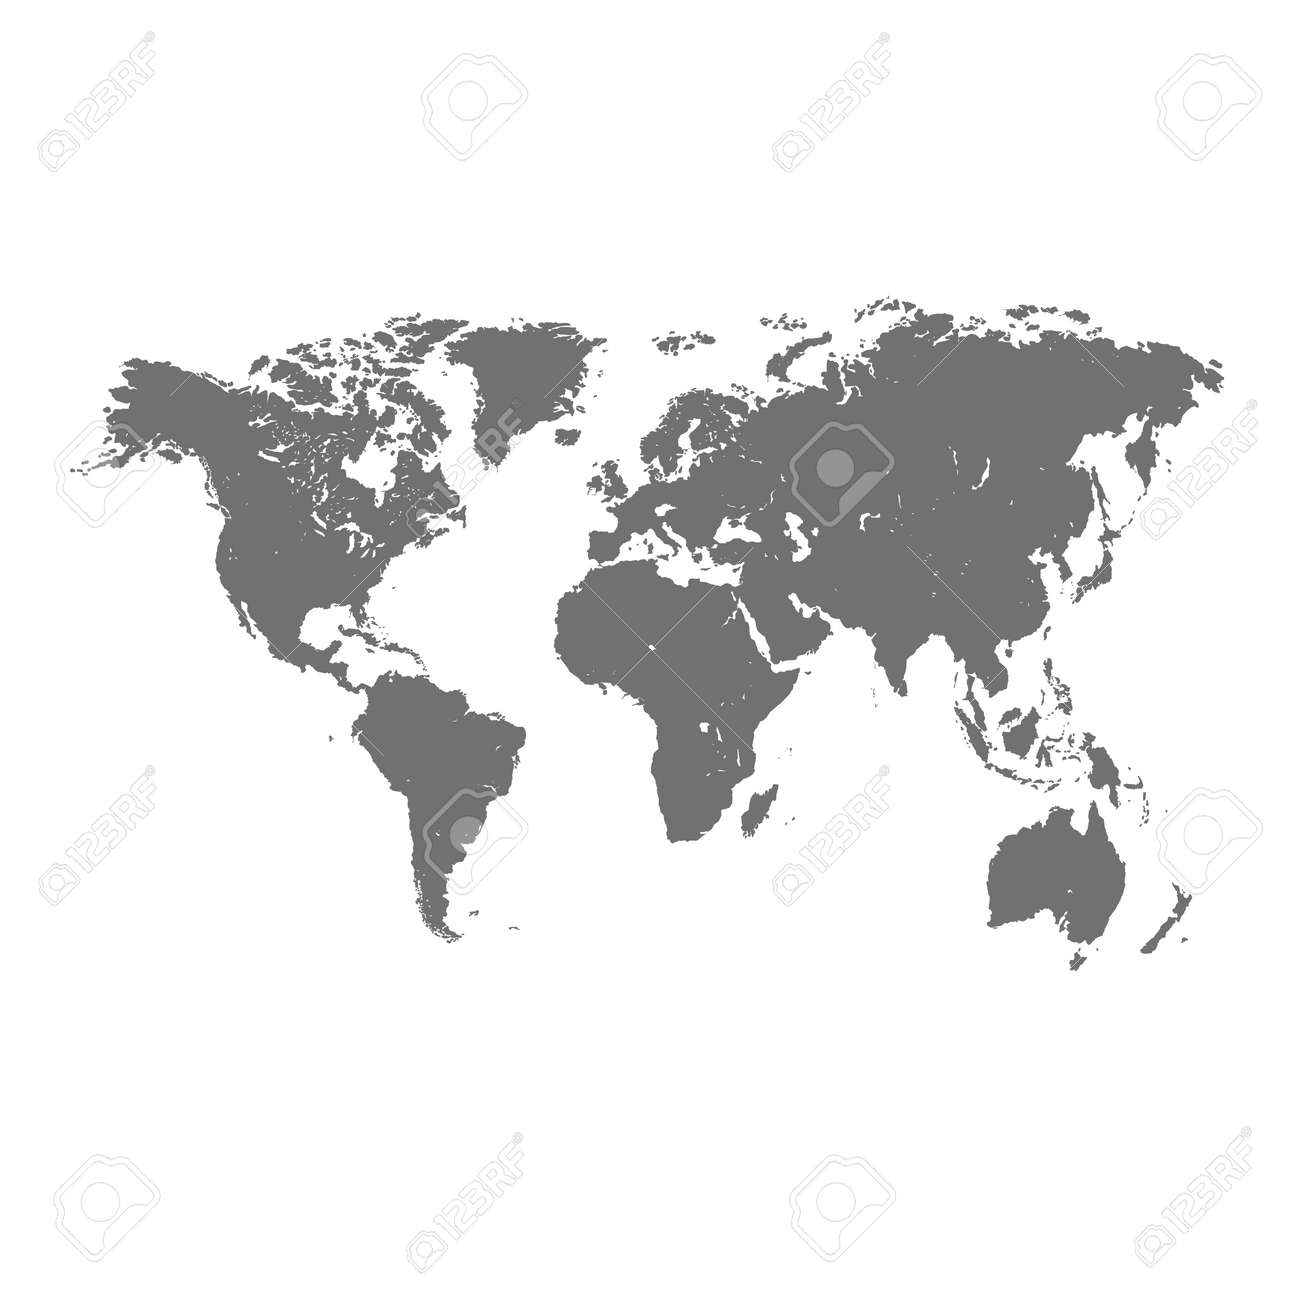 World map vector format royalty free cliparts vectors and stock vector world map vector format gumiabroncs Gallery